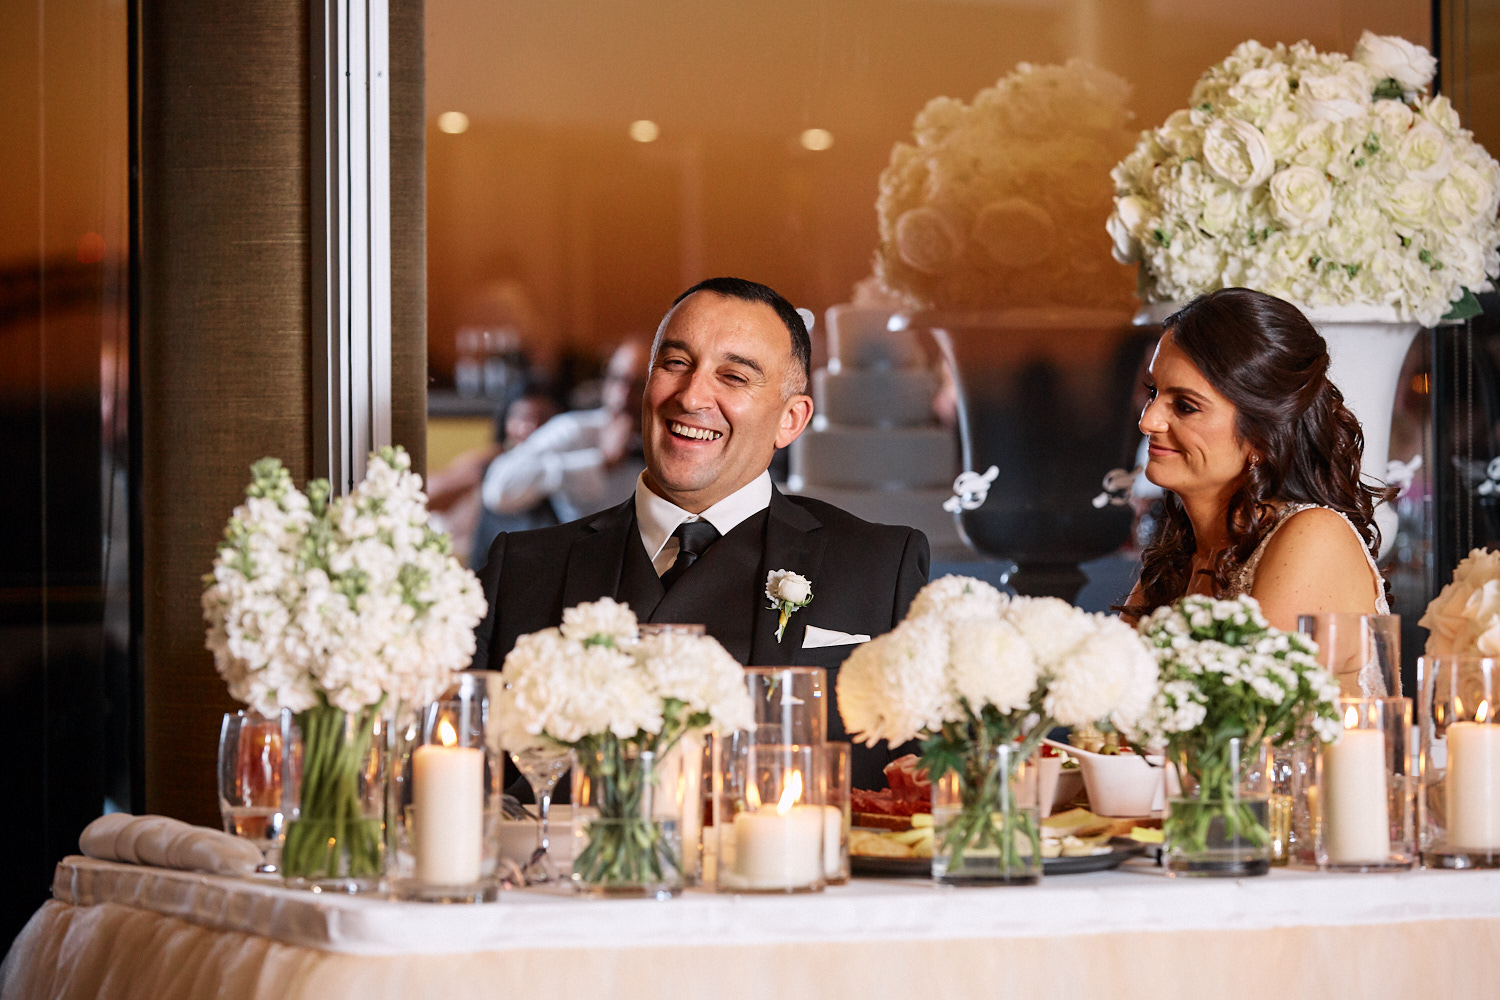 Groom sitting behind table smiling during reception at Taronga Centre by Blue Mountains wedding photographer Joshua Witheford